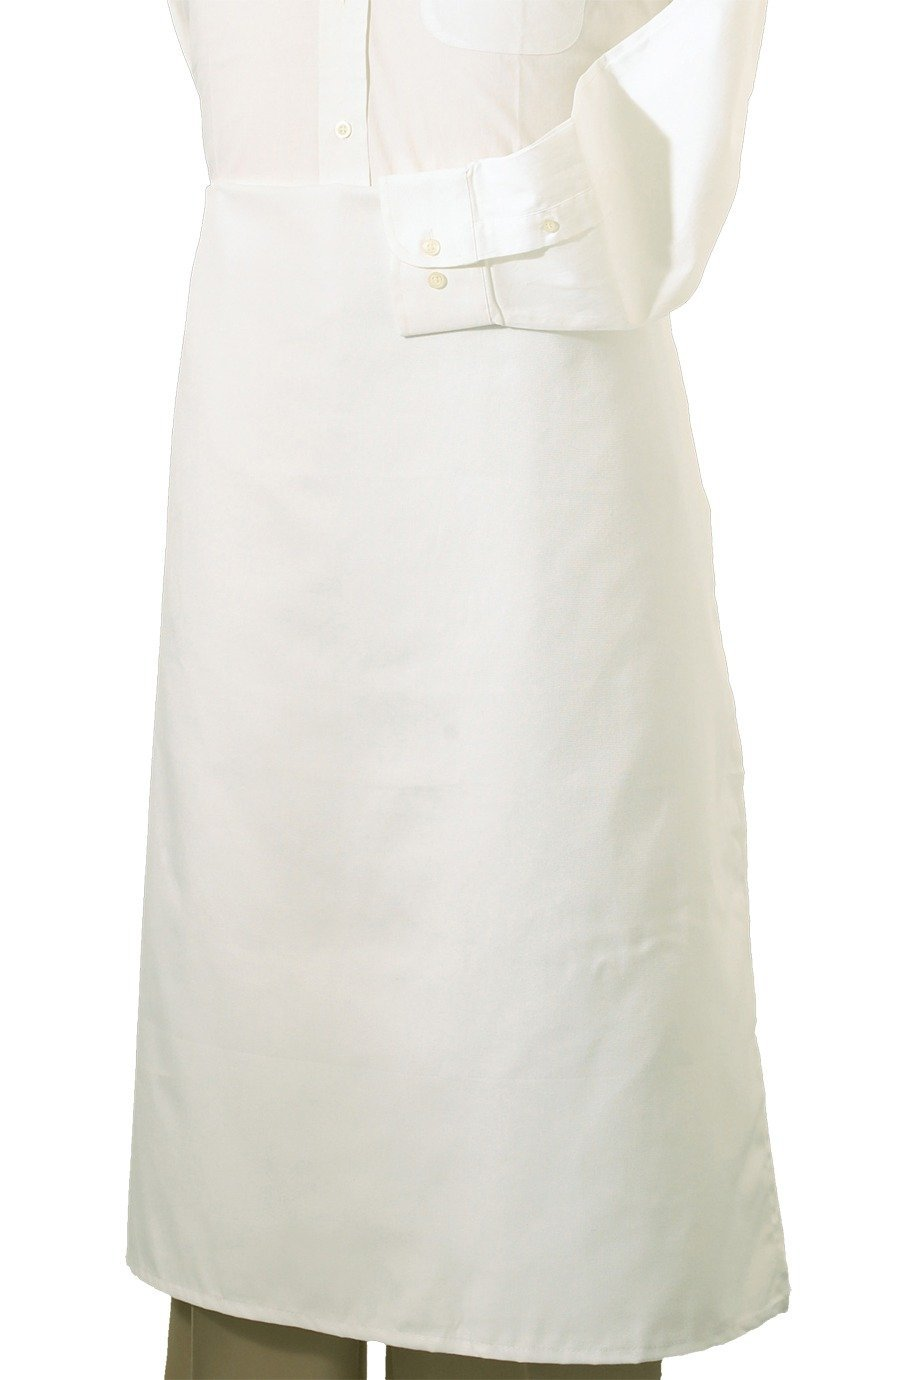 White Bistro Apron (No Pockets)